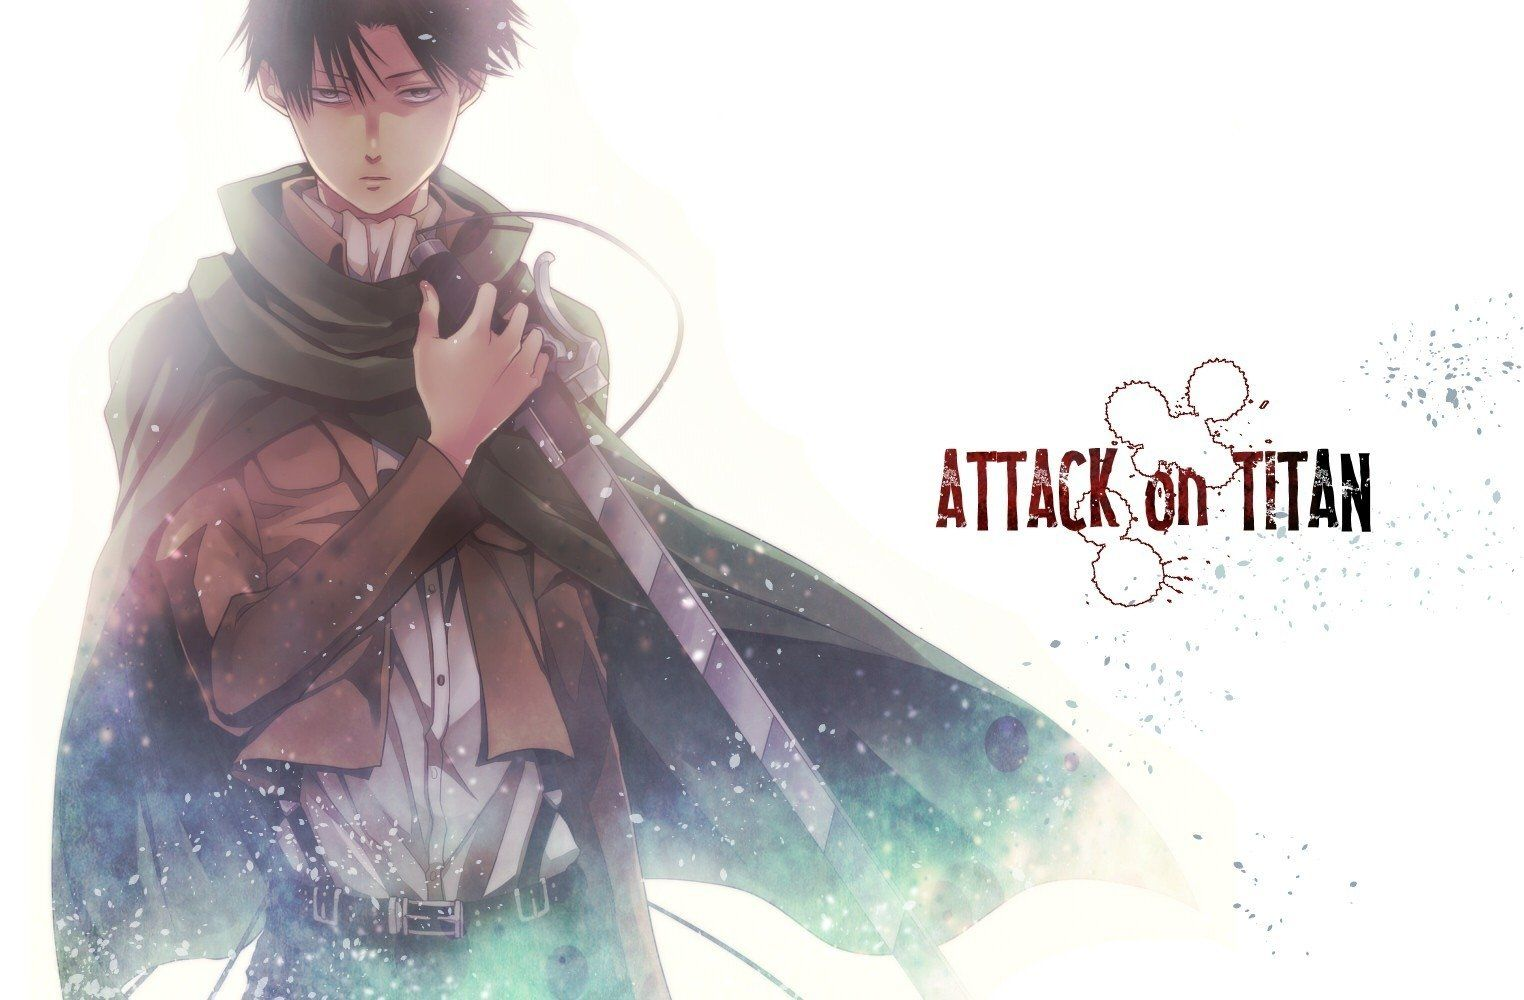 Anime Attack On Titan Levi Ackerman Attack On Titan Shingeki No Kyojin Wallpaper Attack On Titan Levi Attack On Titan Attack On Titan Episodes